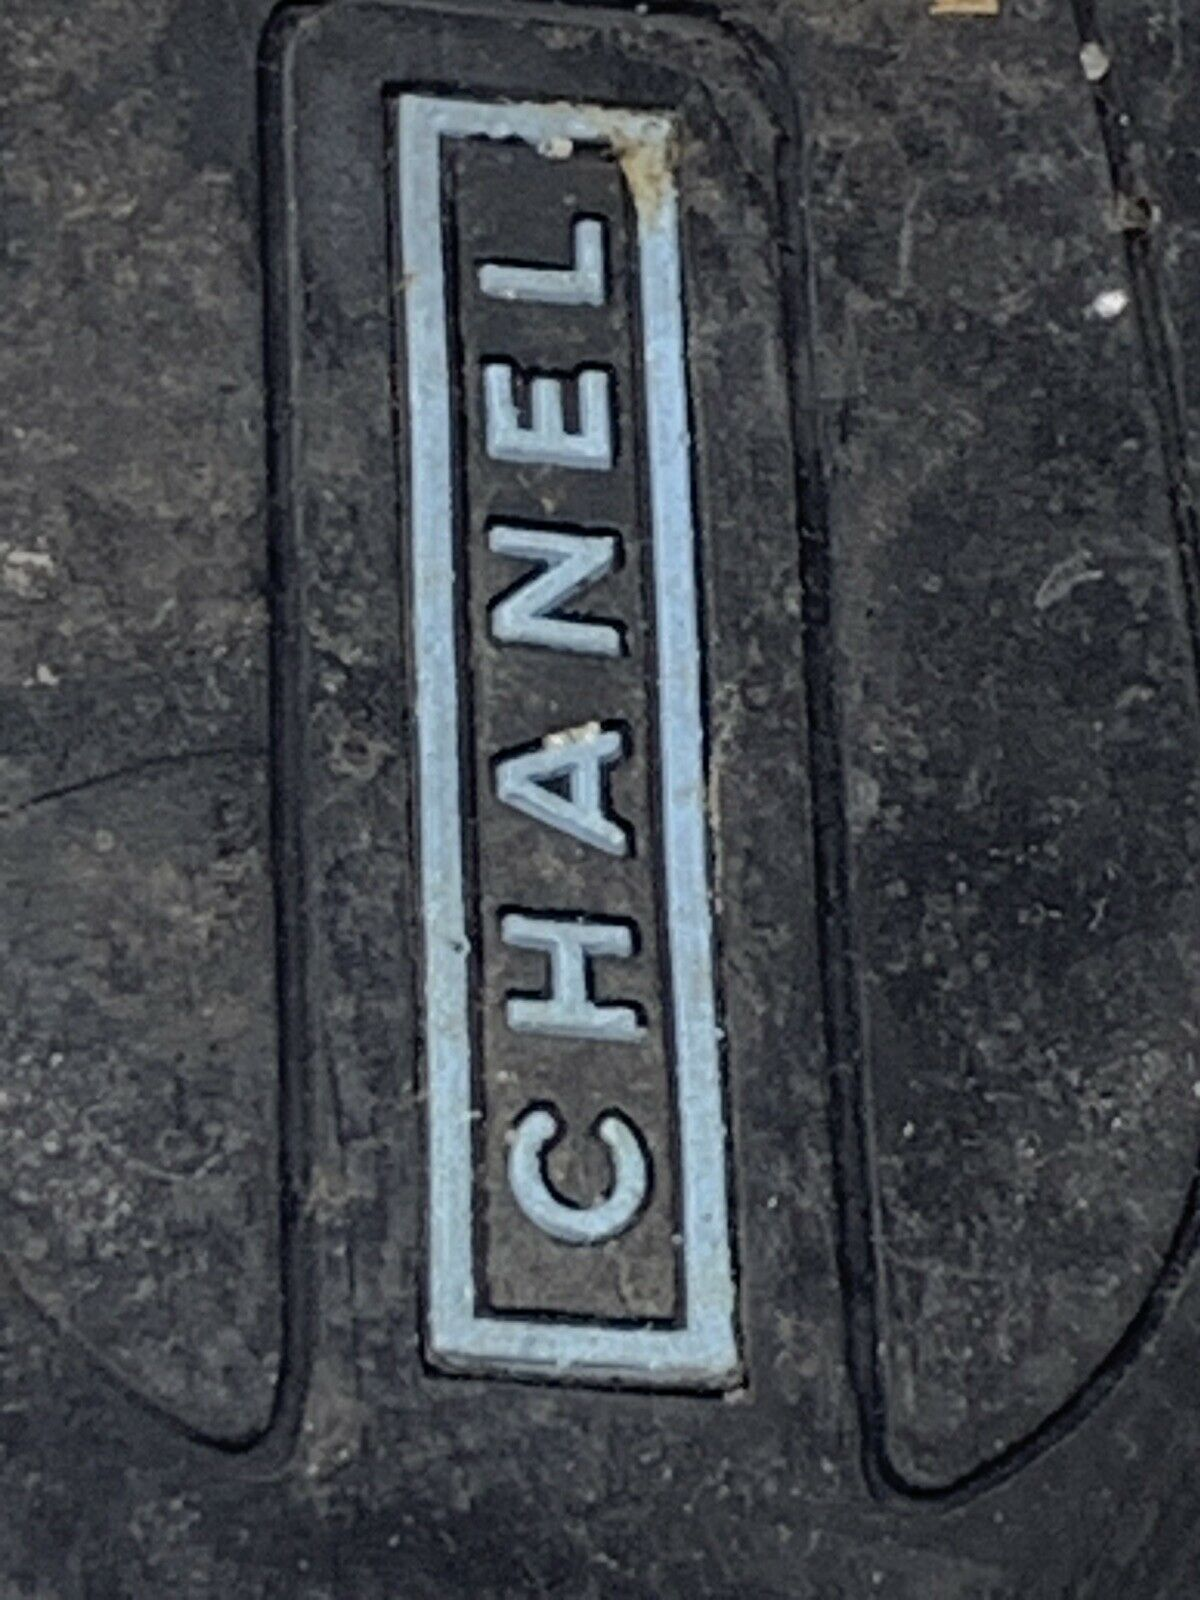 Chanel Sneakers - image 3